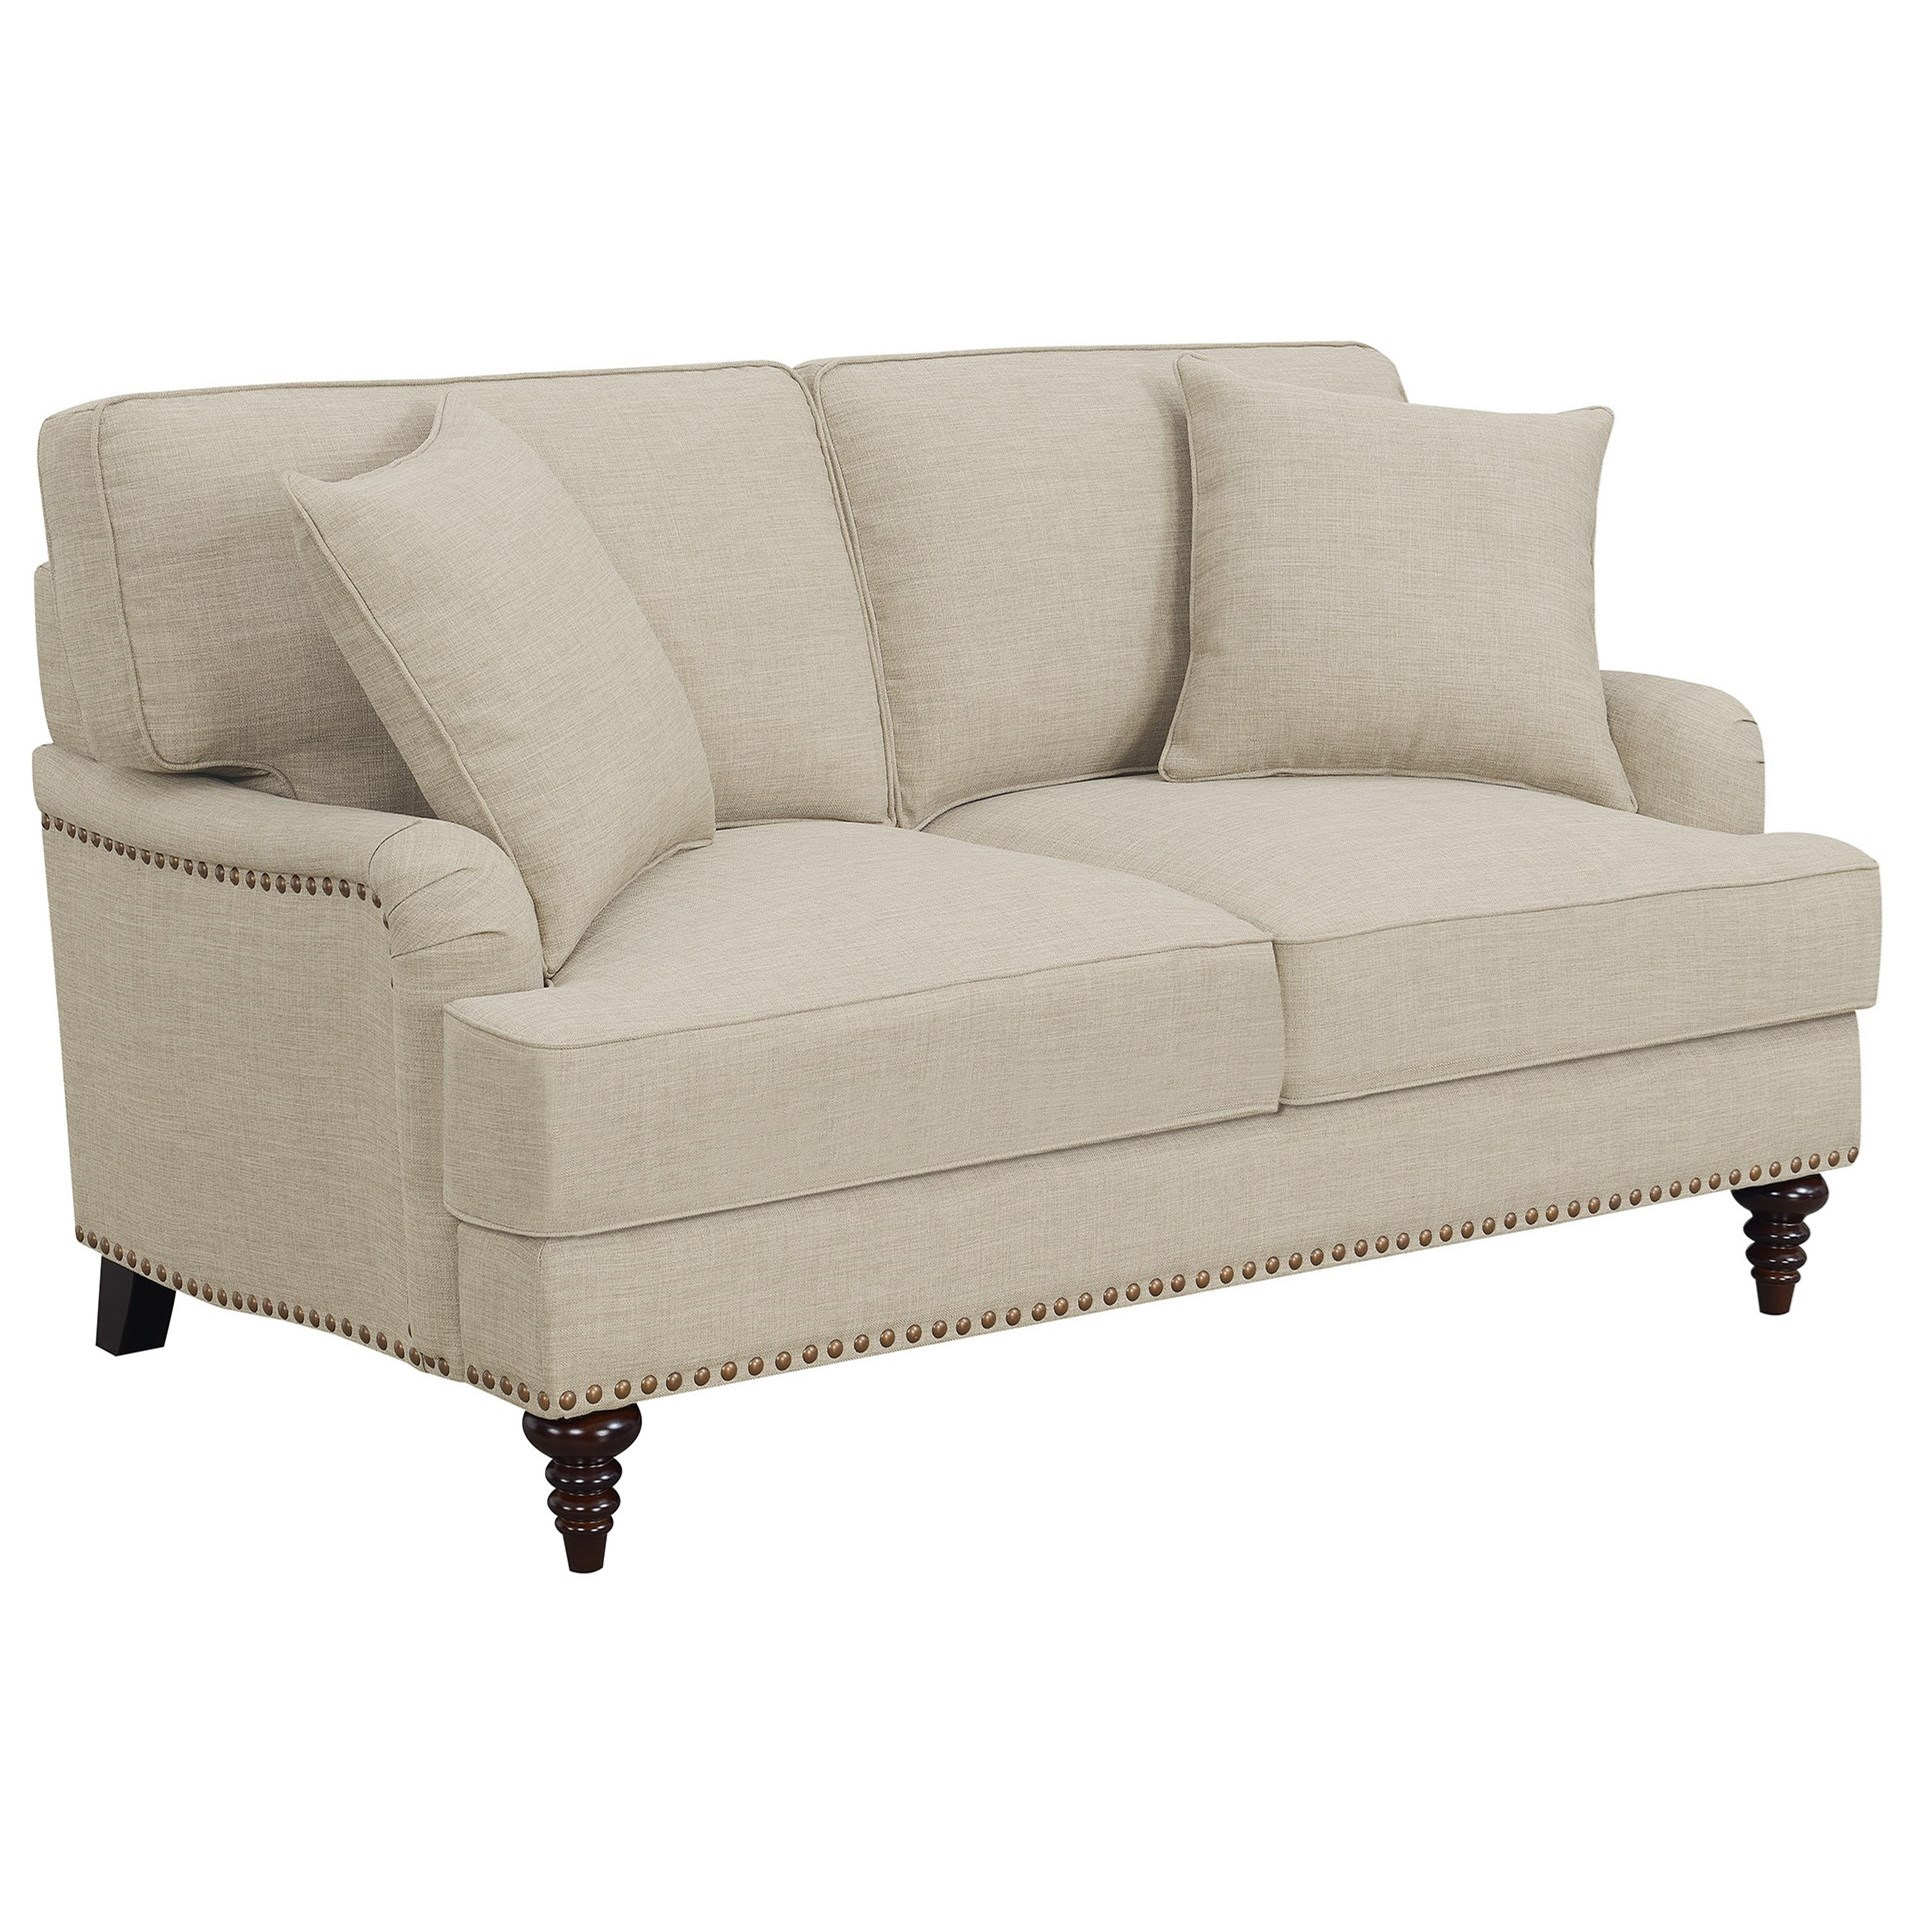 Abby Loveseat w/ Pillows at Dream Home Interiors